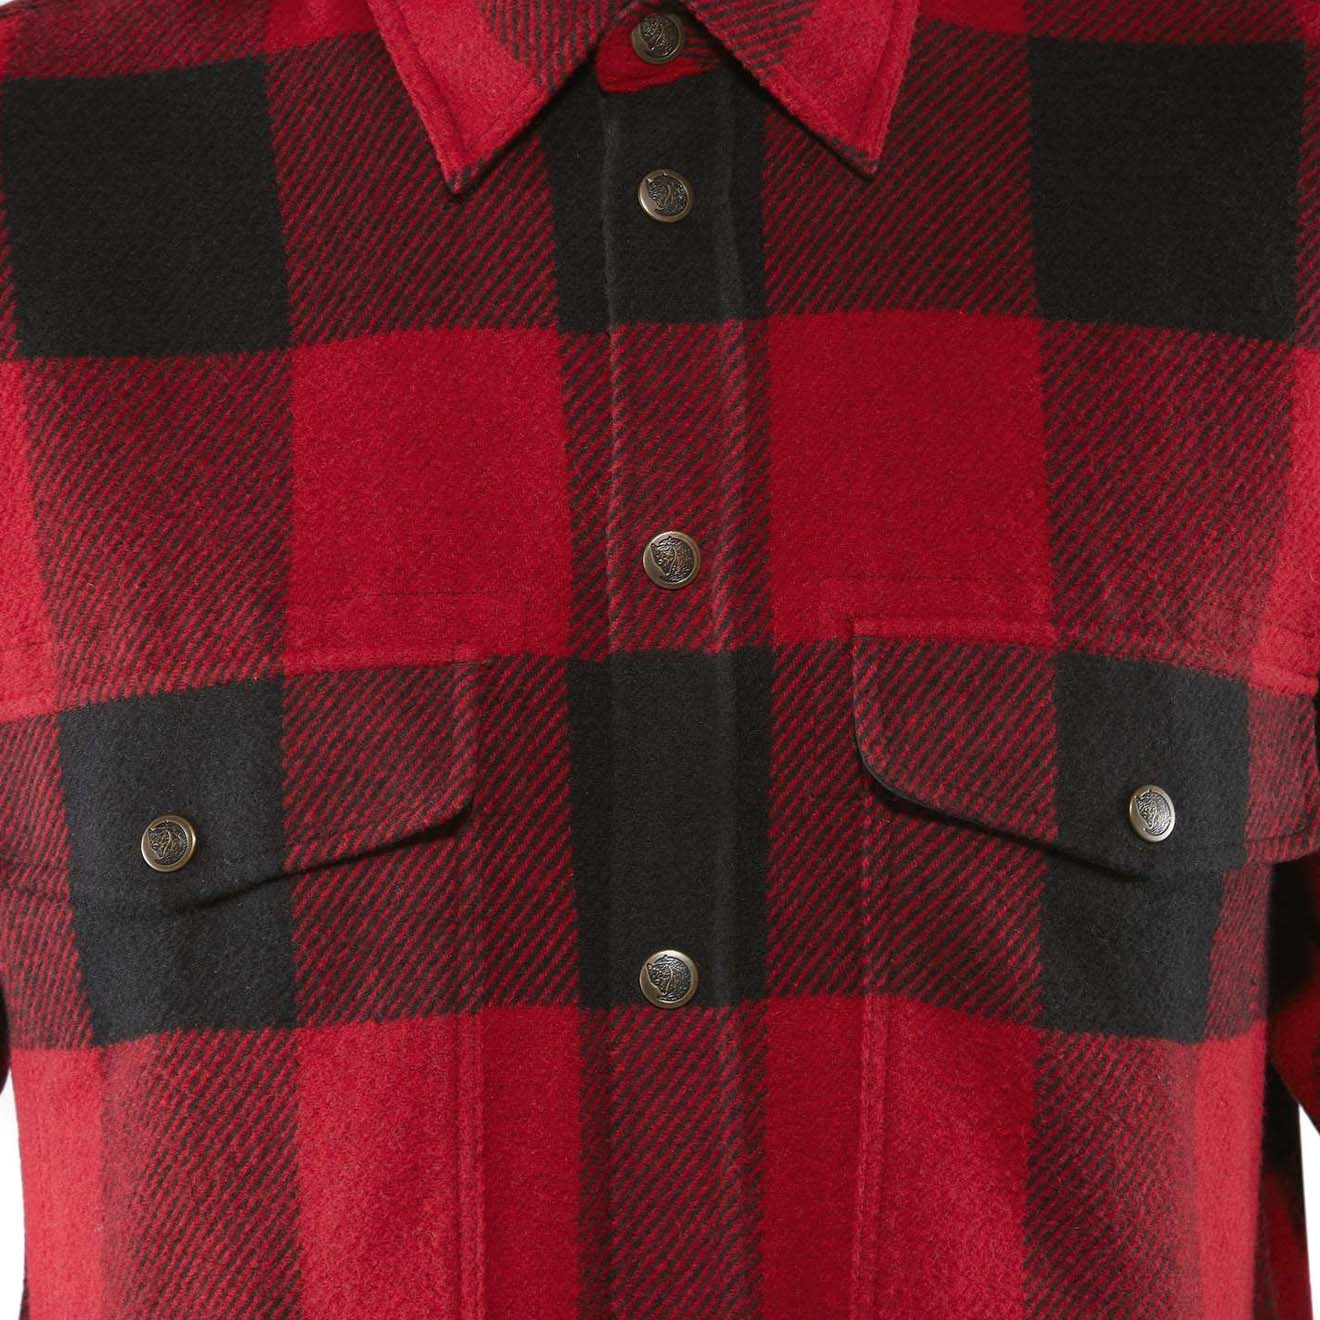 a5dd6e7b389 Fjallraven Canada Shirt Red - The Sporting Lodge